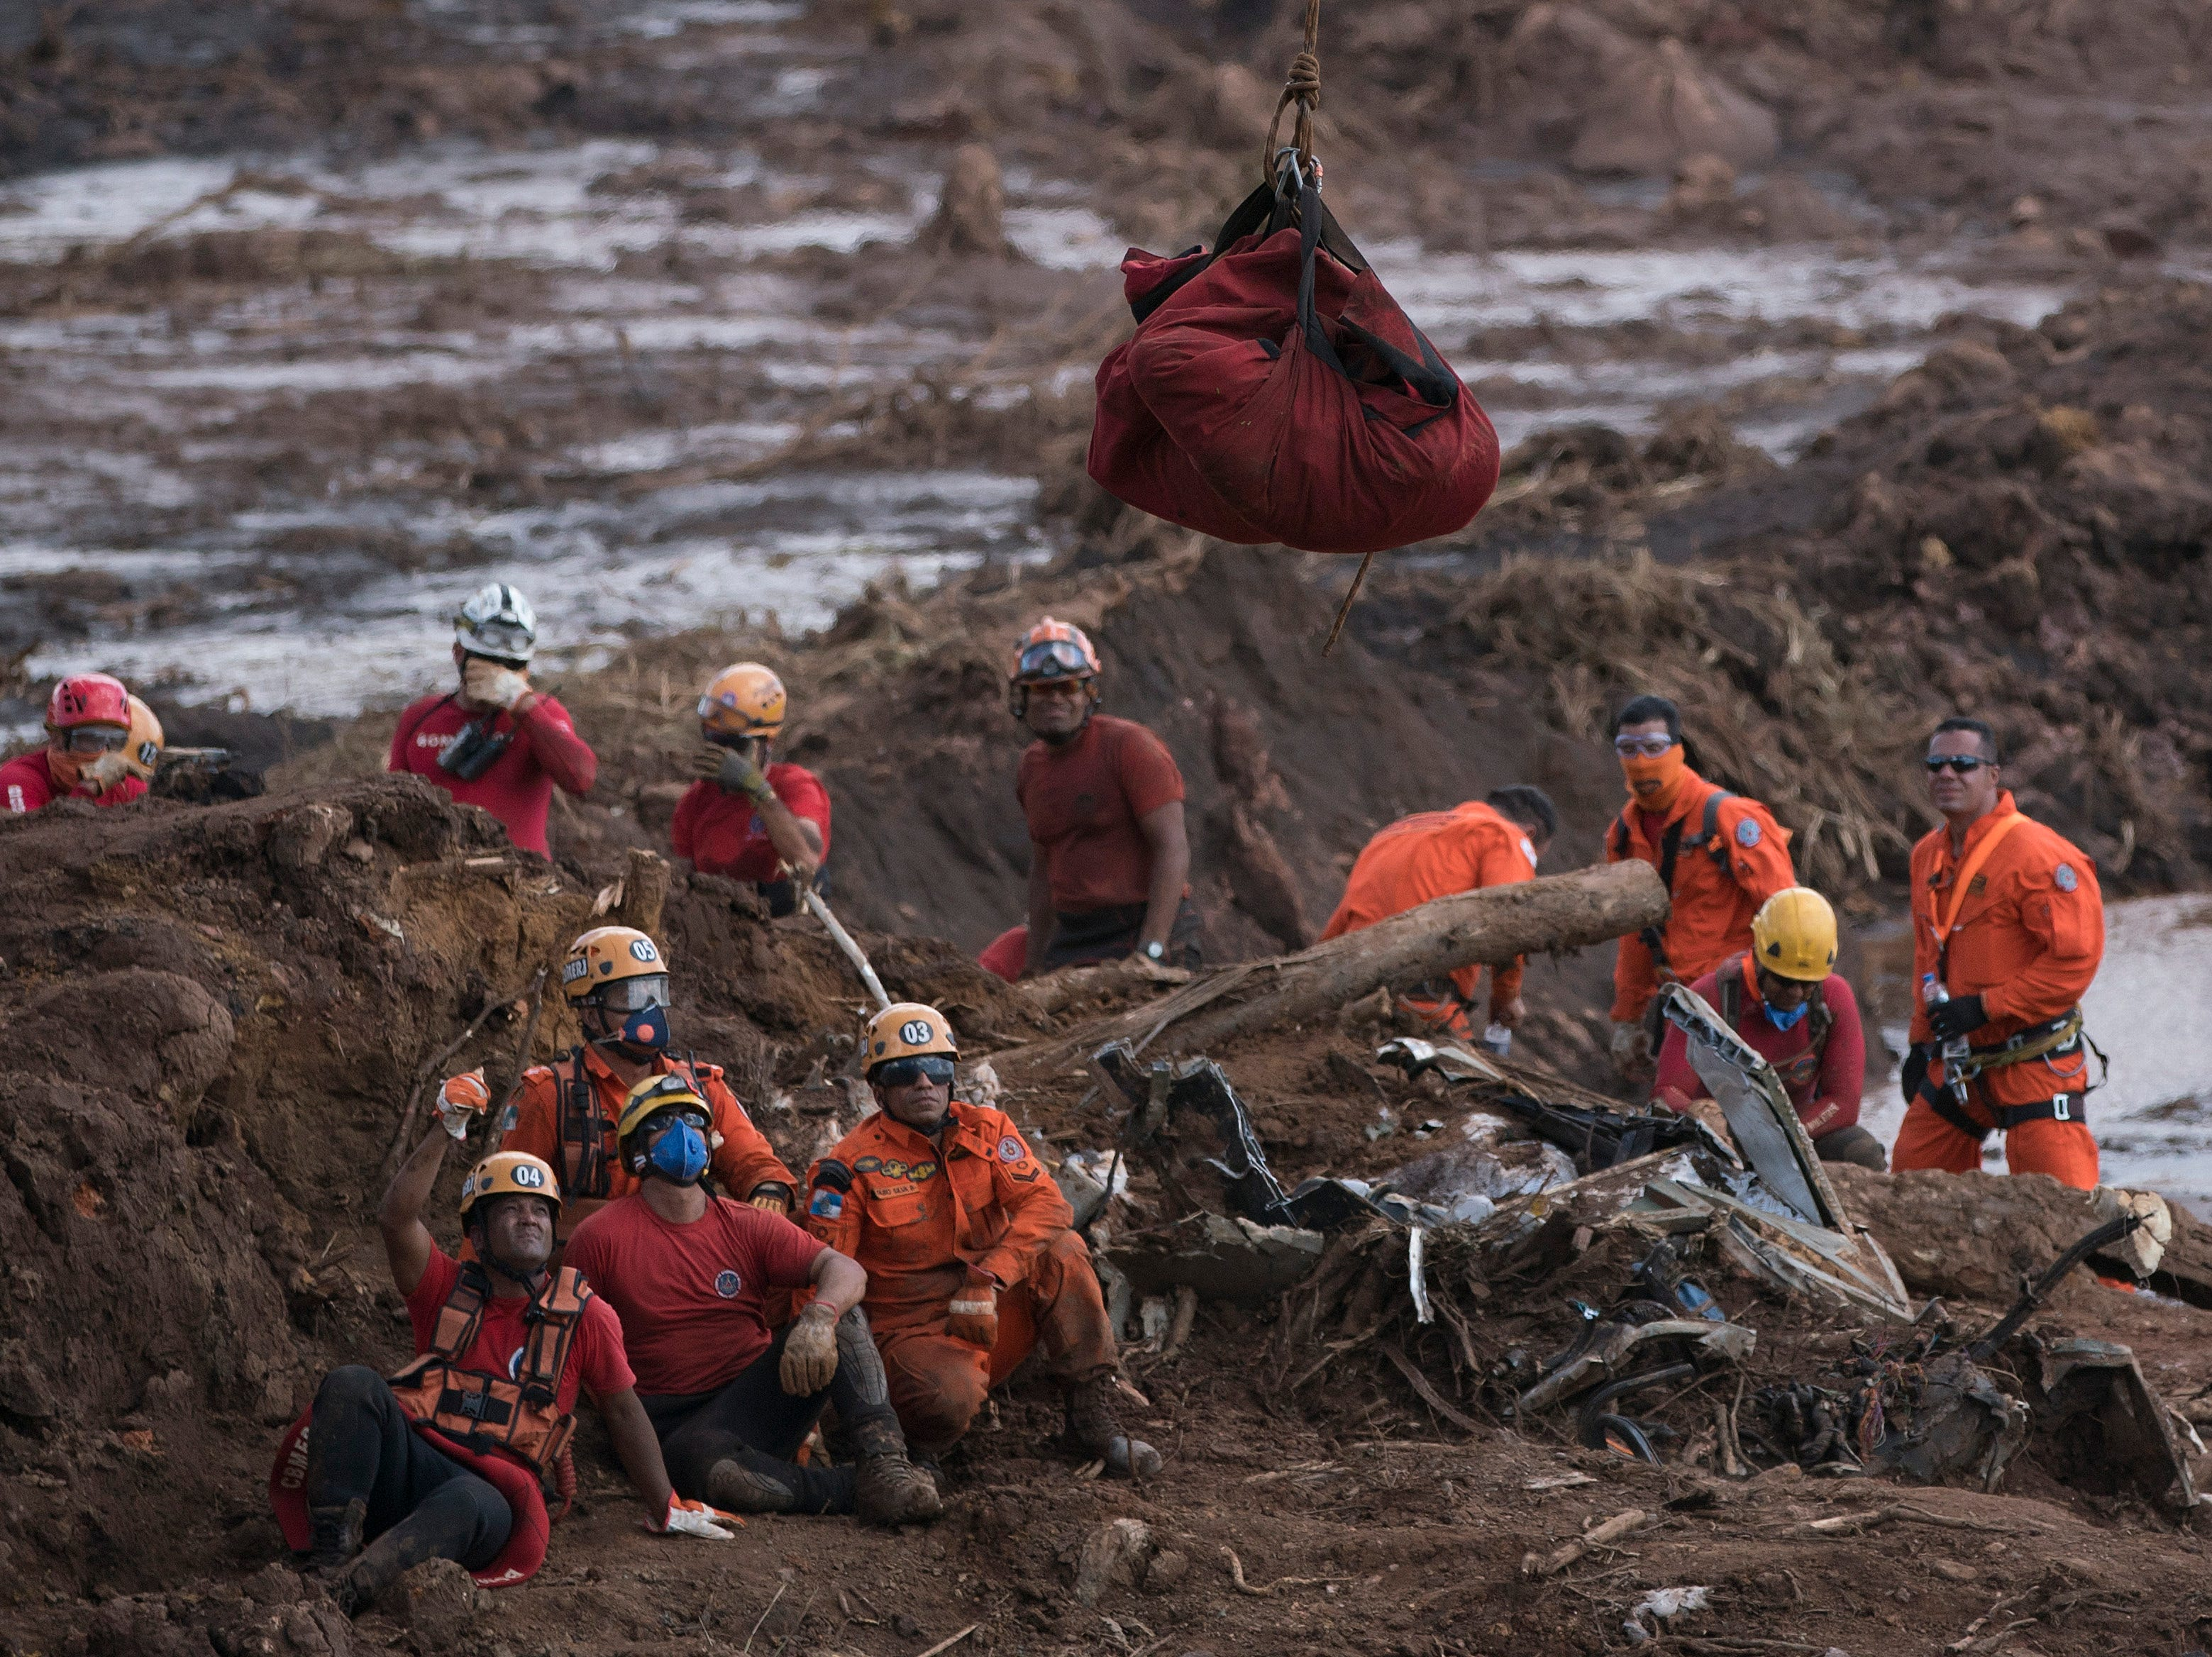 Firefighters watch the body of a person they pulled from the mud, as it is lifted up and taken away by a helicopter days after a dam collapse in Brumadinho, Brazil, Monday, Jan. 28, 2019. Firefighters on Monday carefully moved over treacherous mud, sometimes walking, sometimes crawling, in search of survivors or bodies four days after a dam collapse that buried mine buildings and surrounding neighborhoods with iron ore waste.